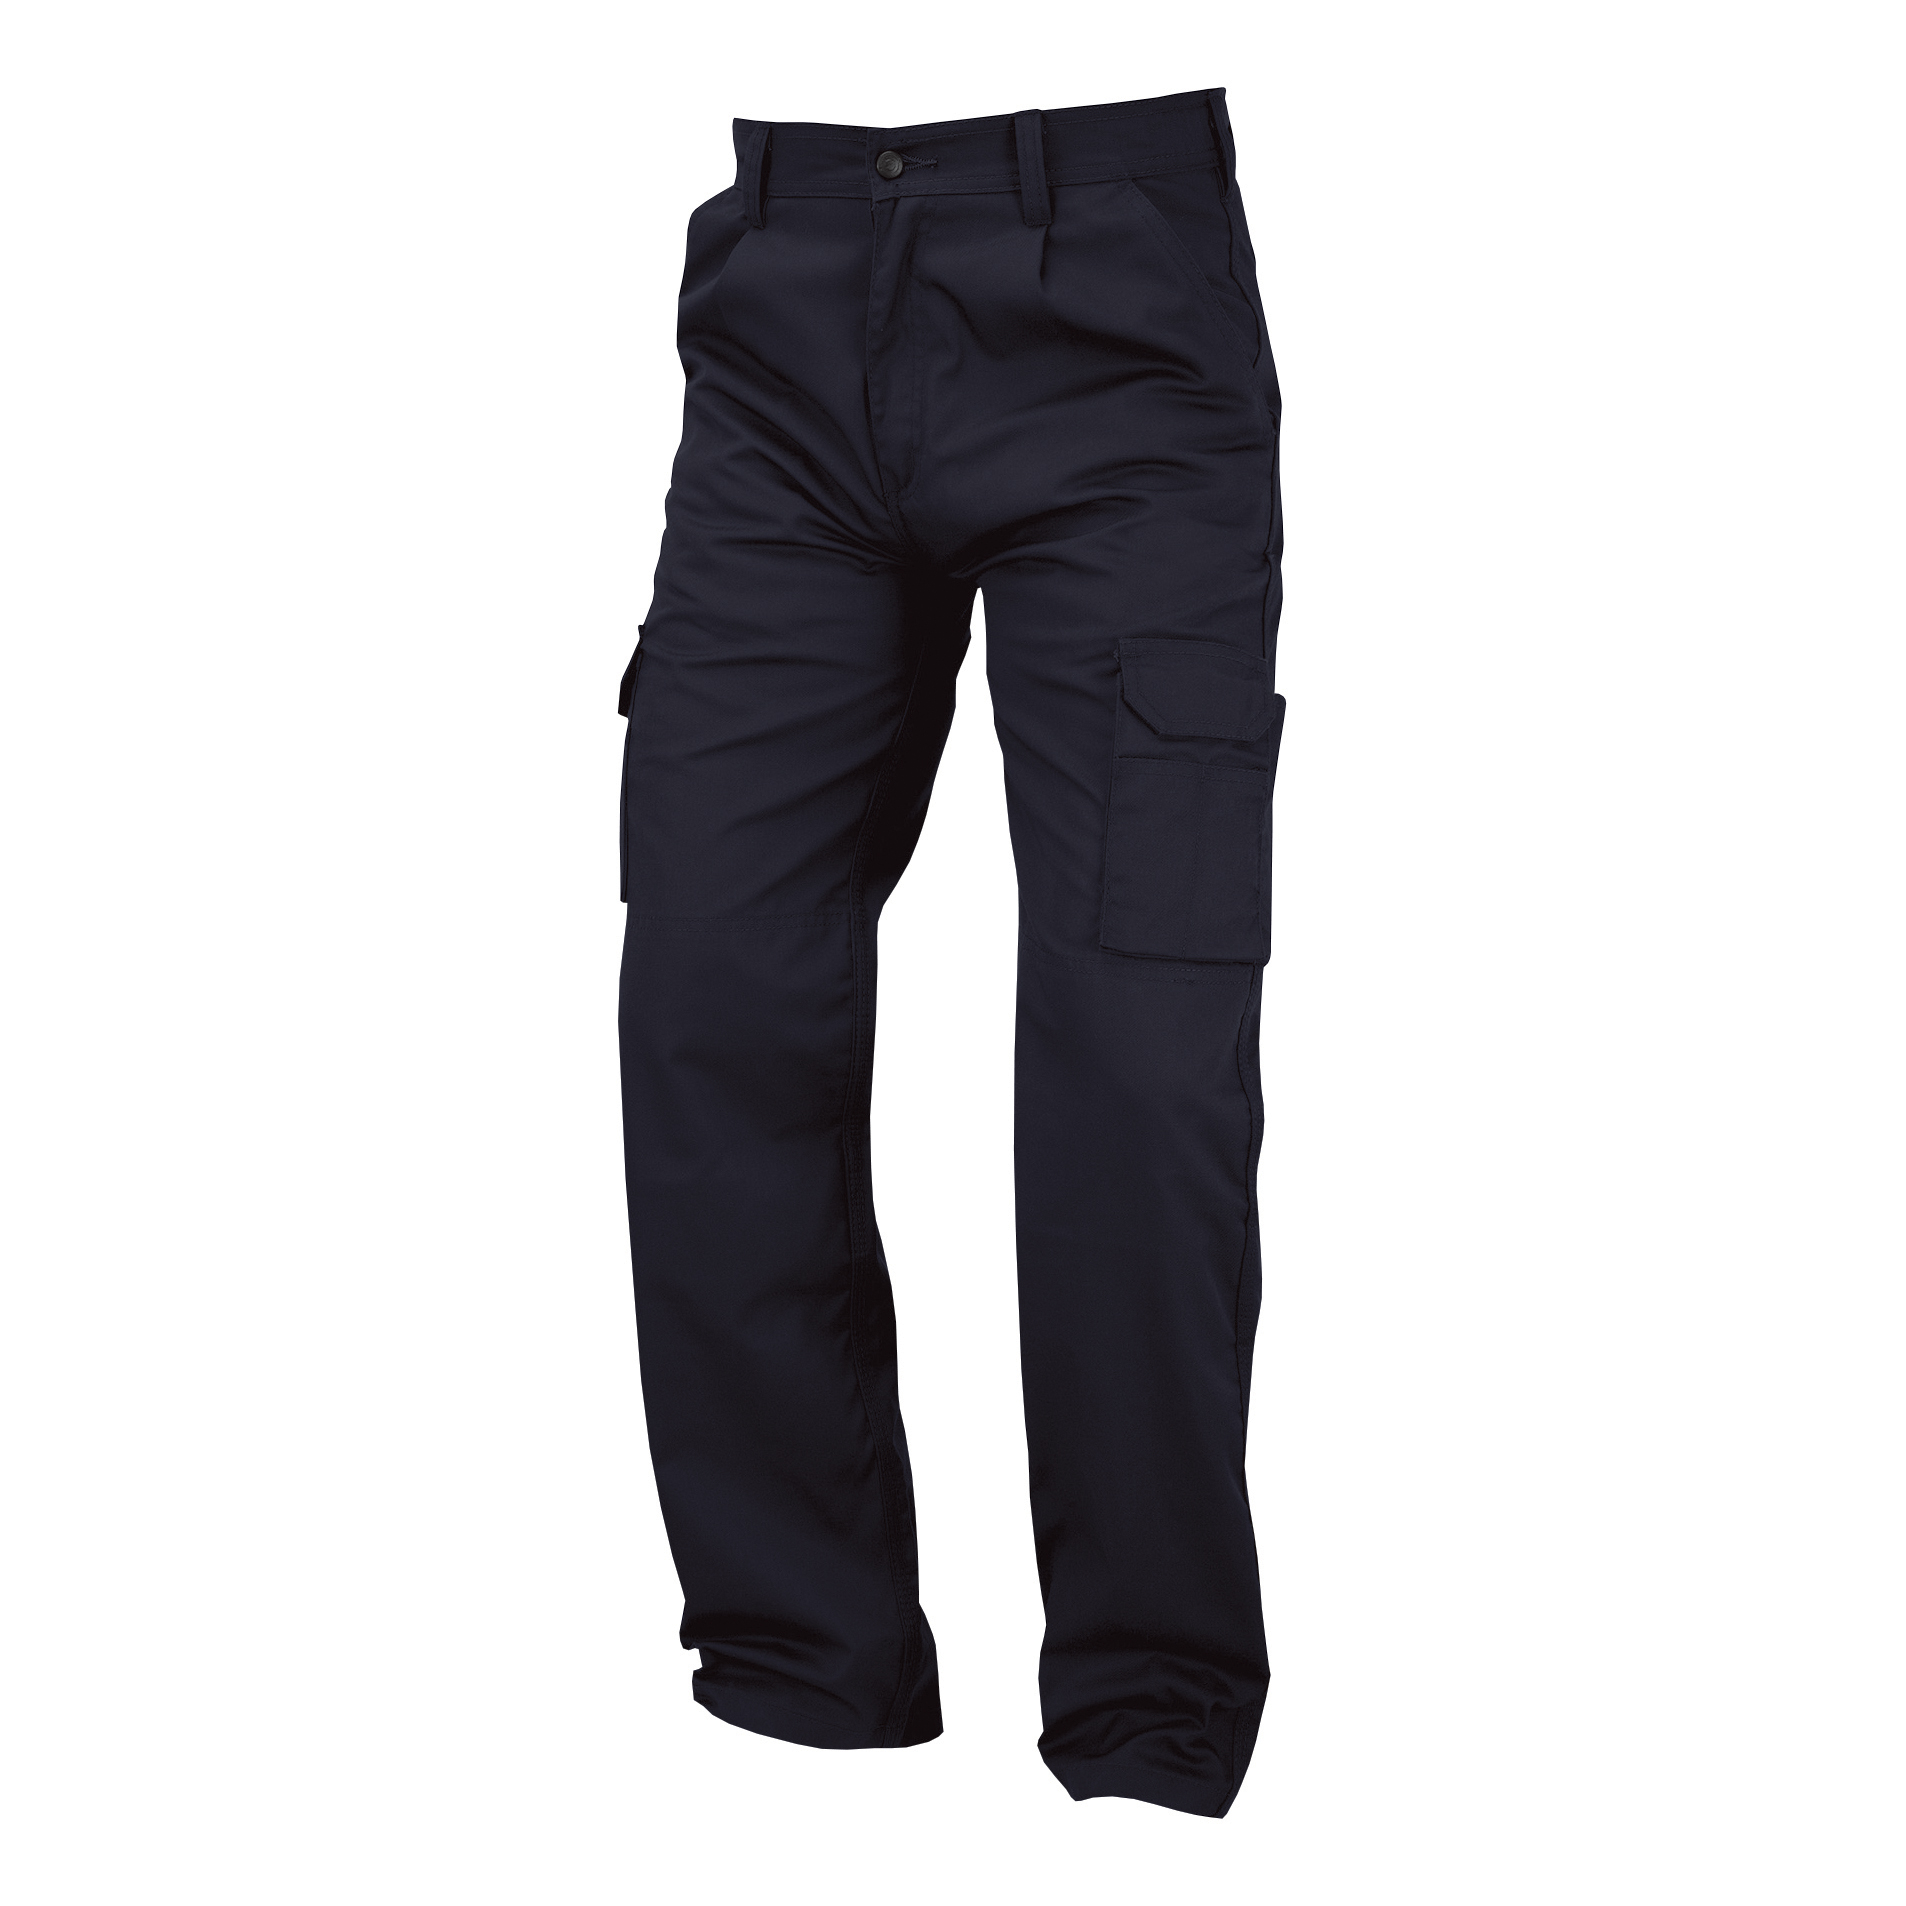 Combat Trousers Multifunctional 30in Long Navy Blue Ref PCTHWN42T *Approx 3 Day Leadtime*